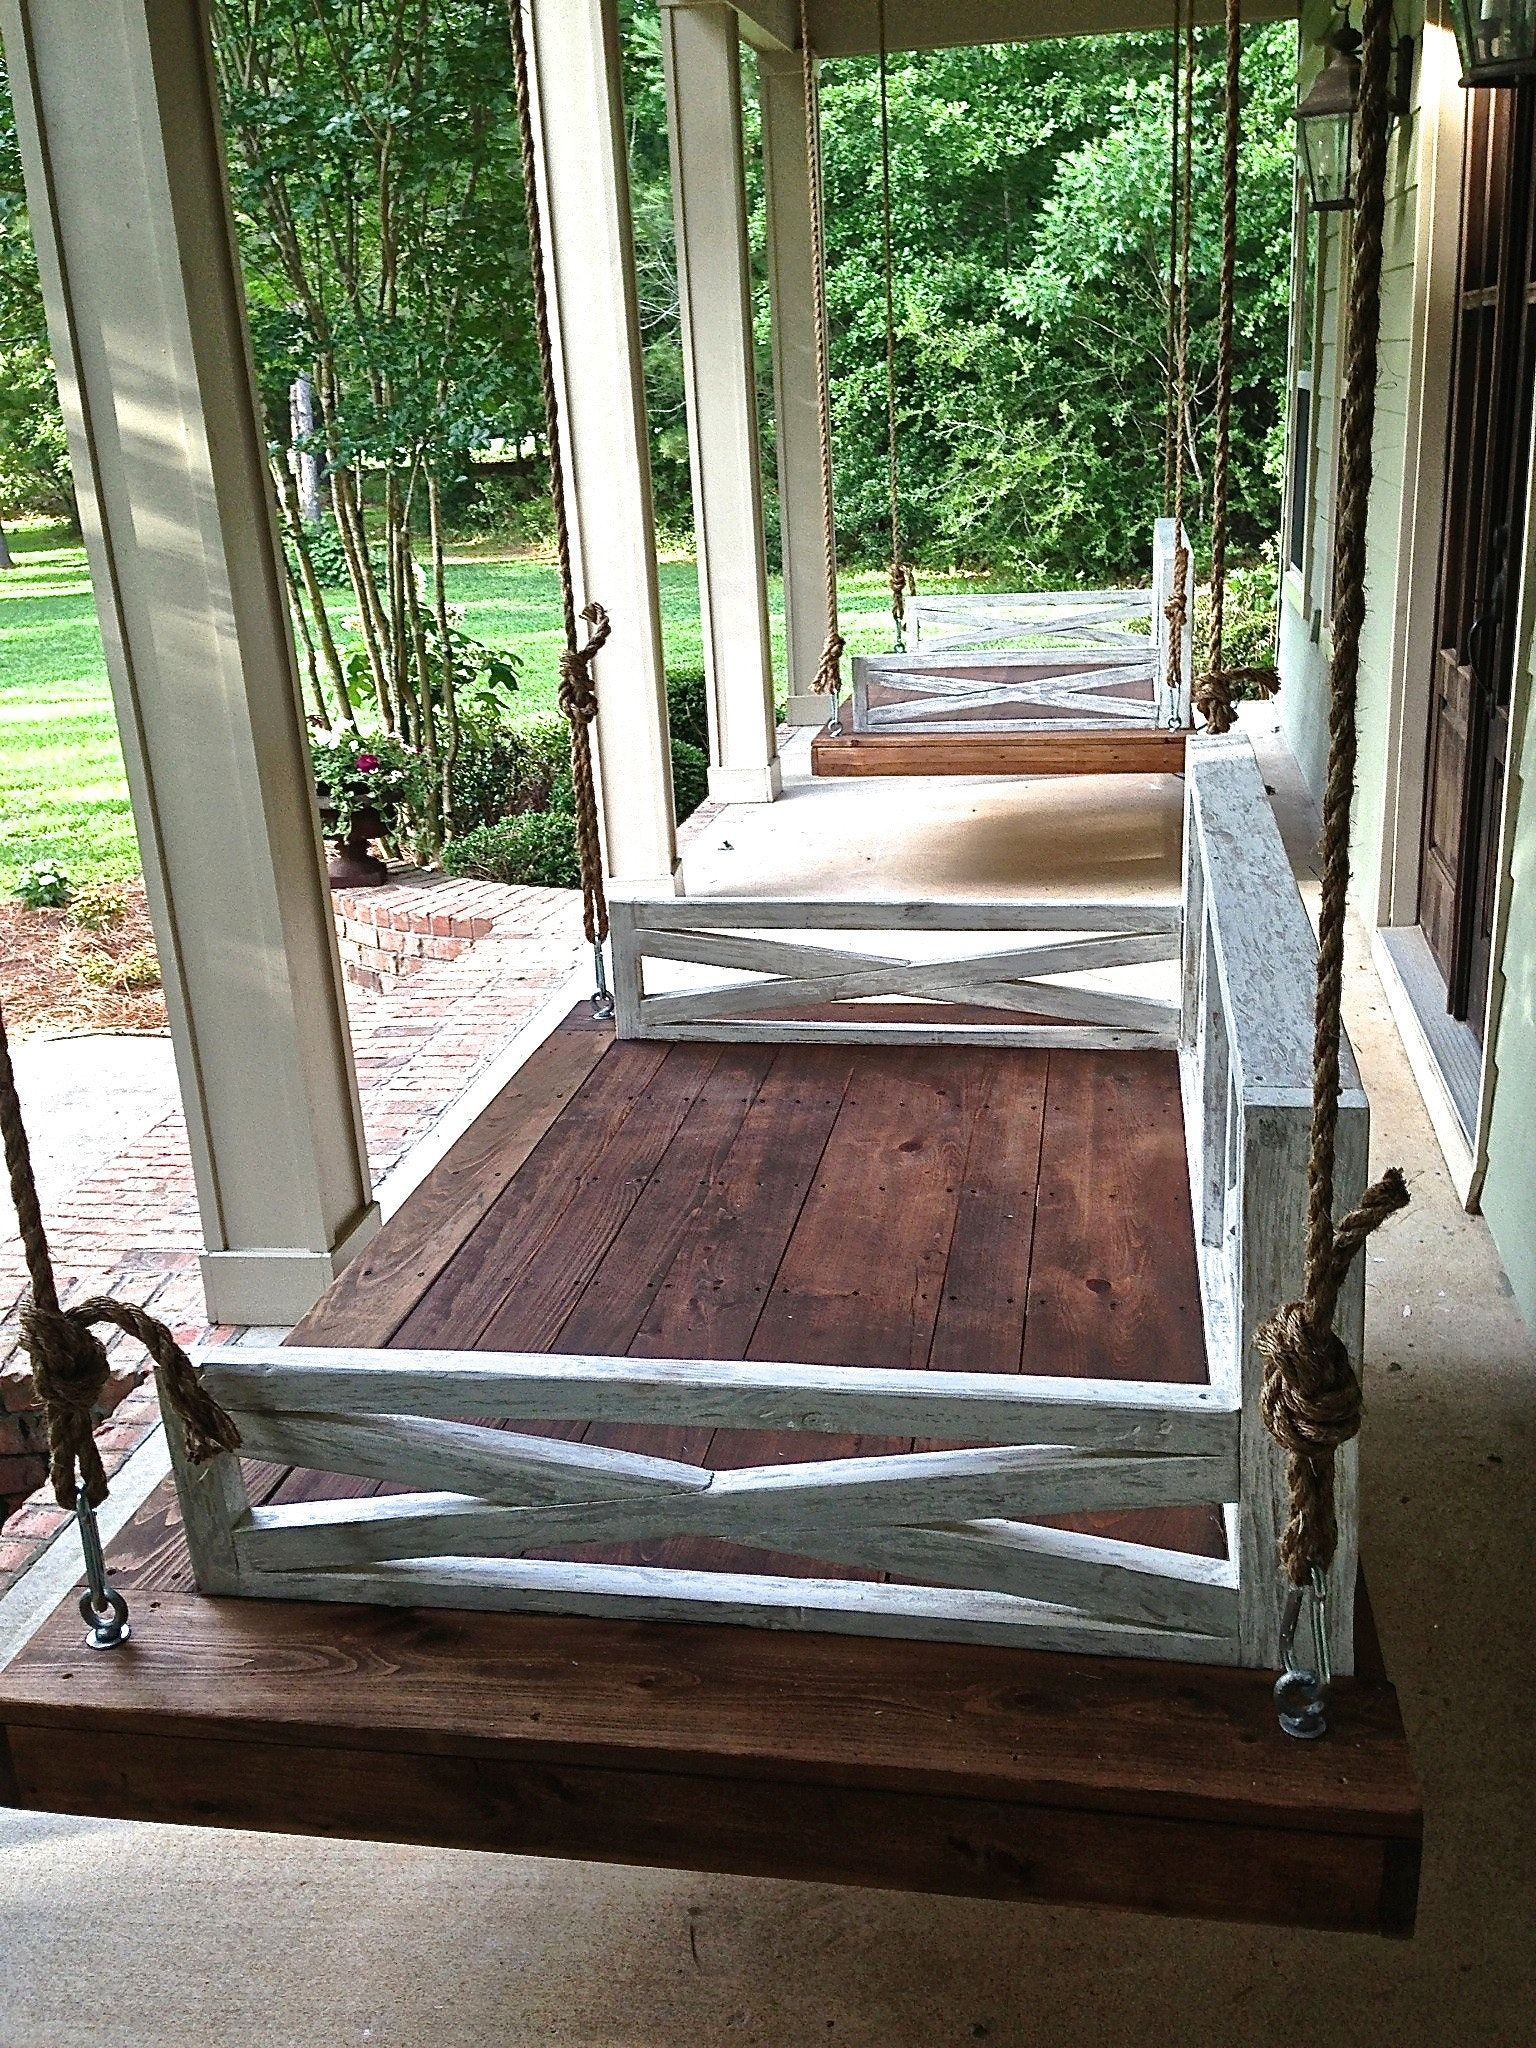 Daybed Porch Swing Hanging Daybed Porch Swing | Outdoor With Regard To Day Bed Porch Swings (Image 8 of 25)